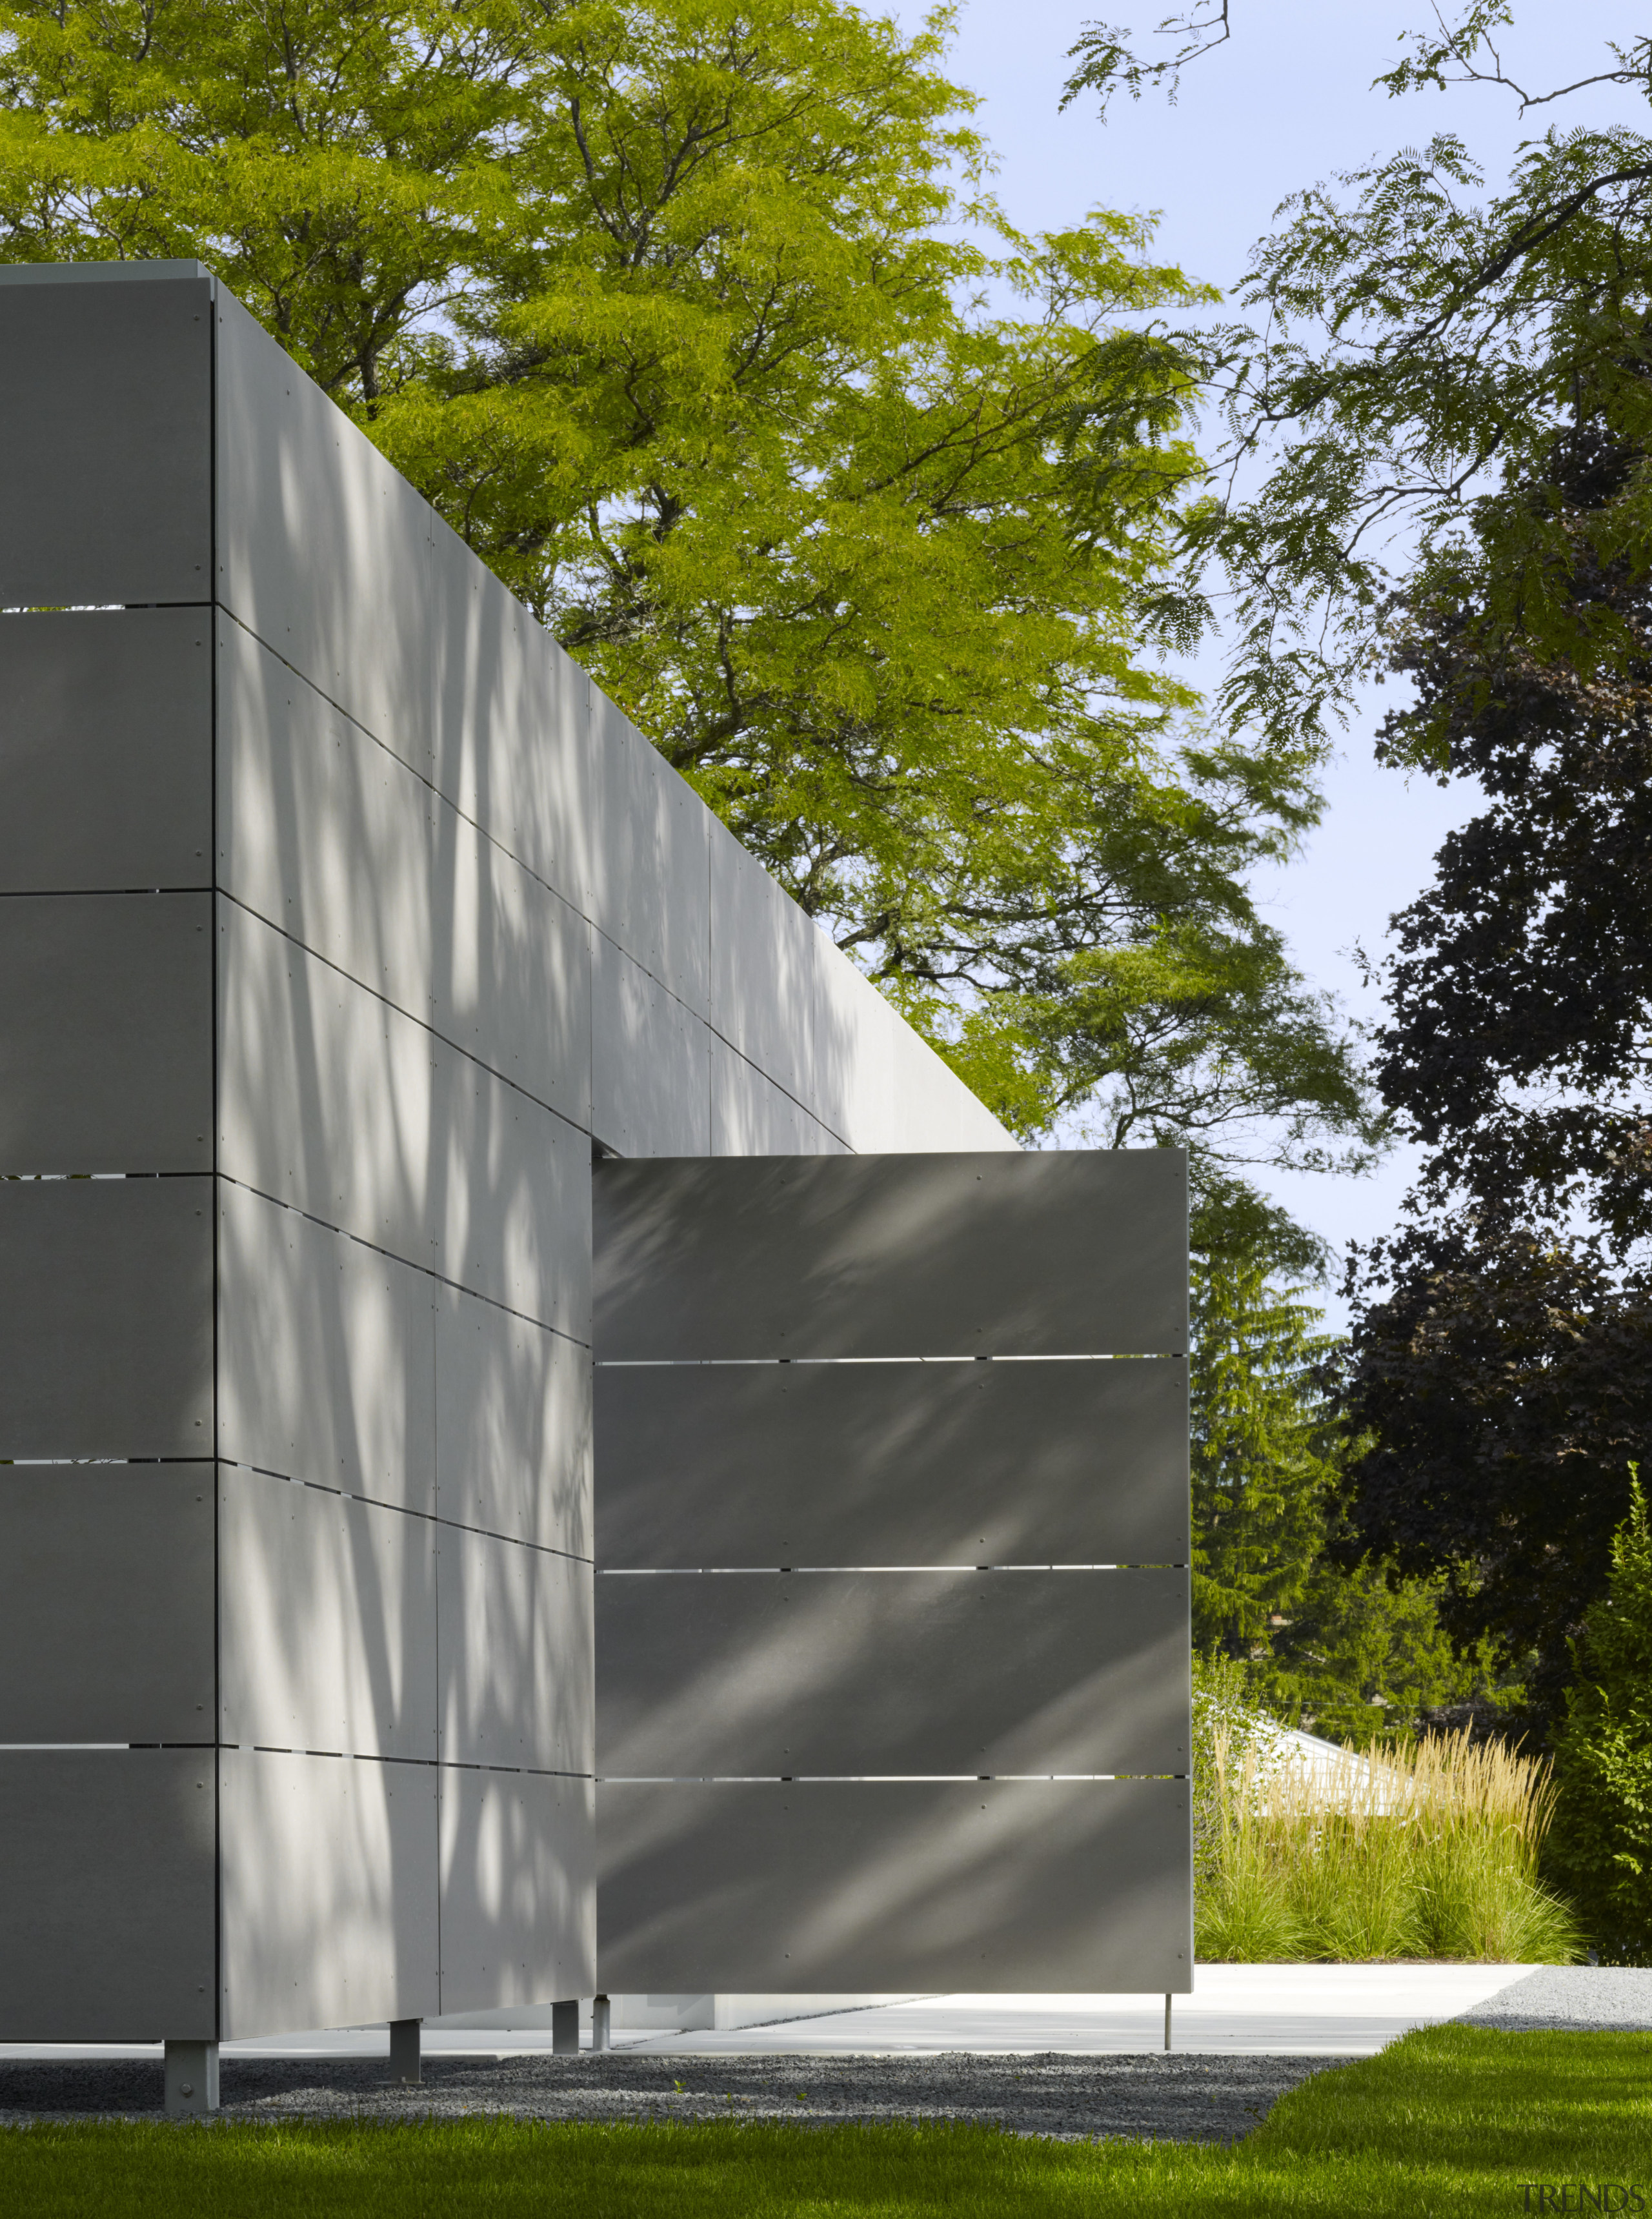 Cement panels form a large door that can architecture, building, daytime, facade, grass, house, pavilion, sky, structure, tree, brown, black, gray